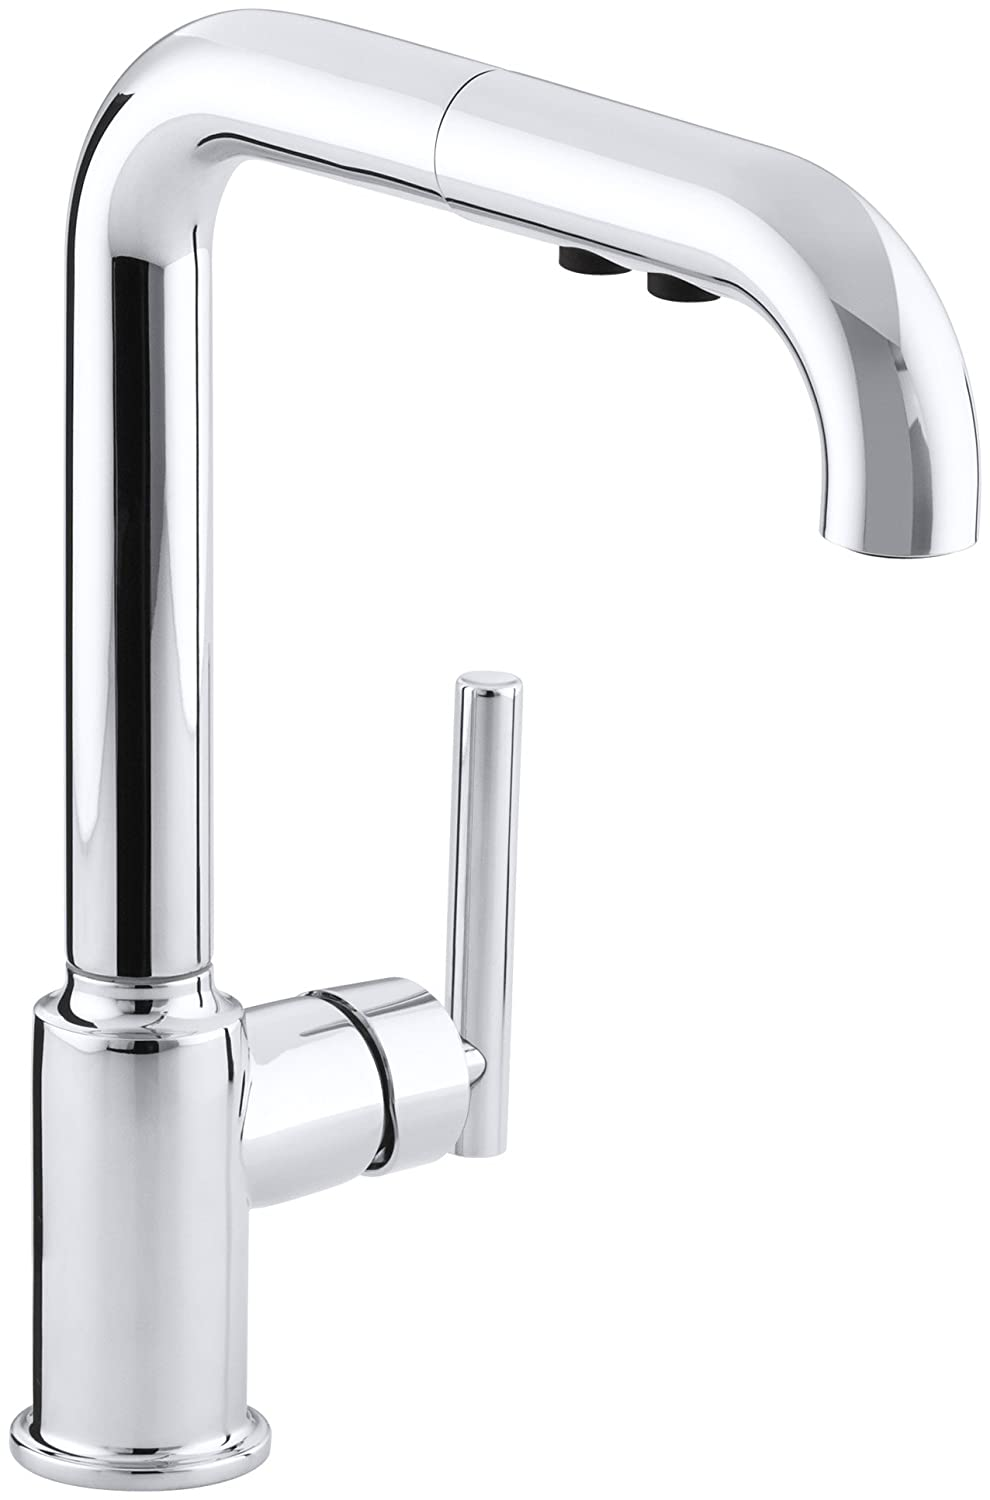 Ordinaire KOHLER K 7505 CP Purist Primary Pullout Kitchen Faucet, Polished Chrome    Touch On Kitchen Sink Faucets   Amazon.com